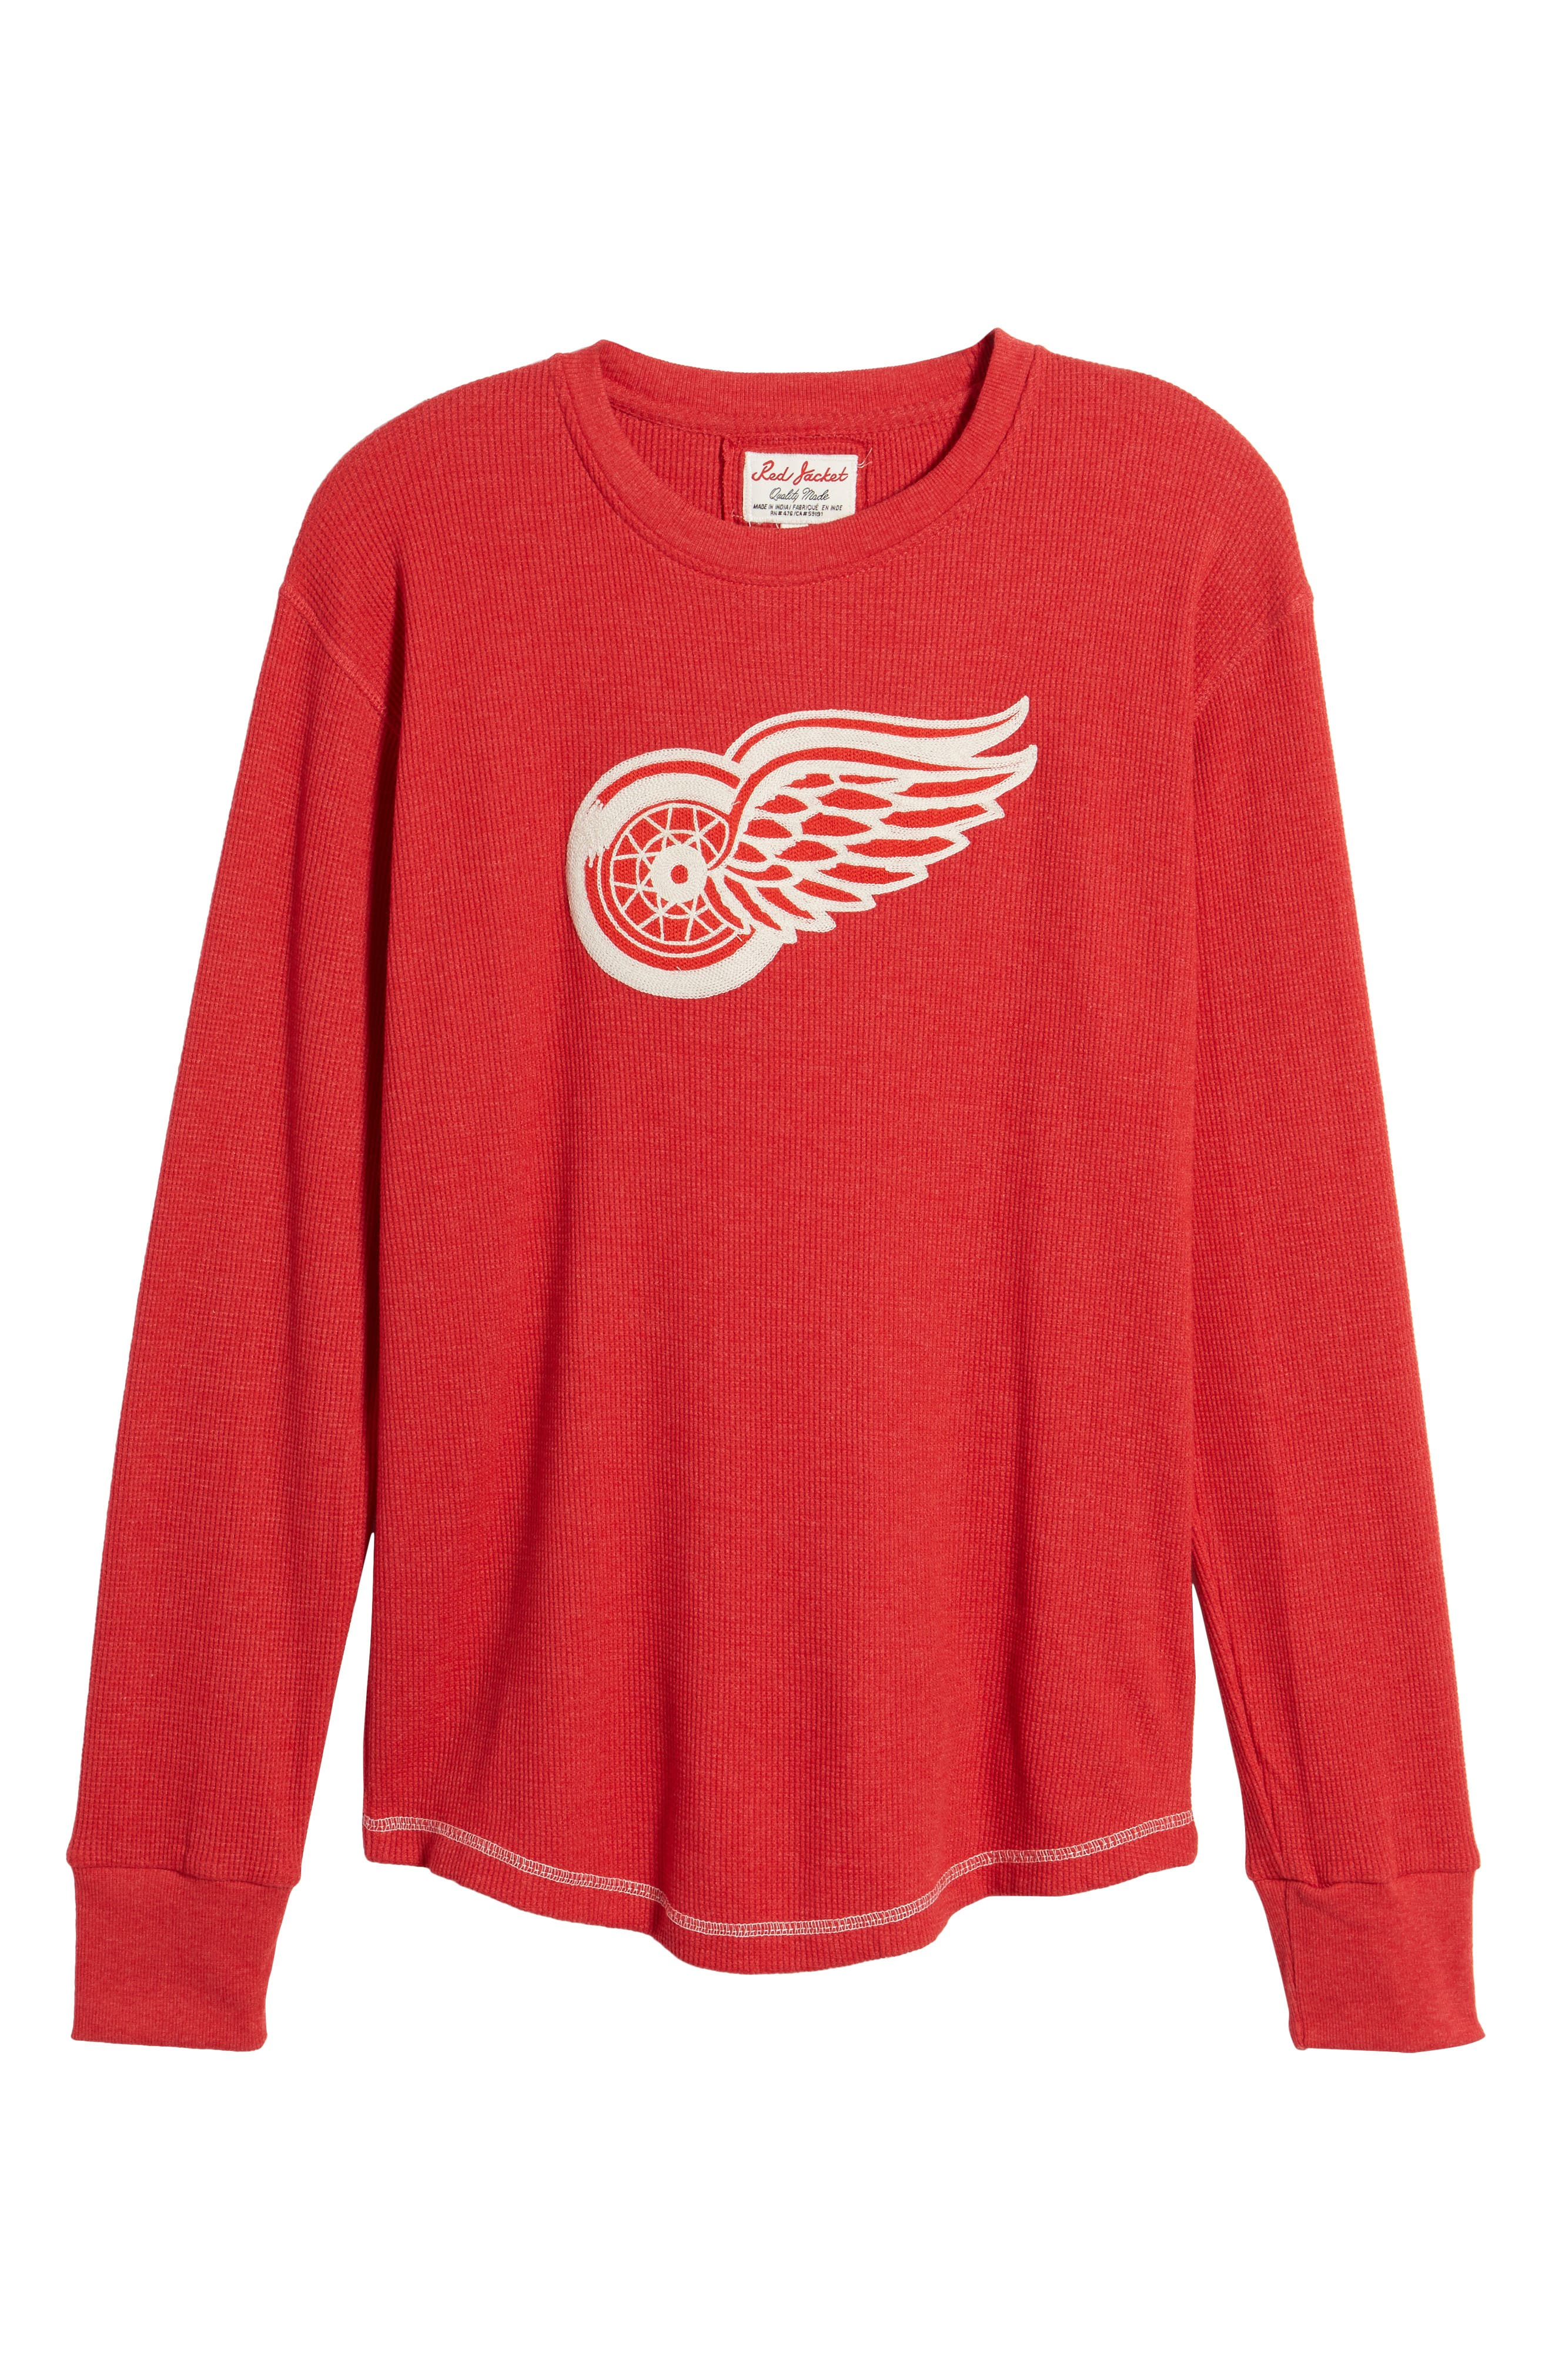 Detroit Red Wings Embroidered Long Sleeve Thermal Shirt,                             Alternate thumbnail 6, color,                             Red